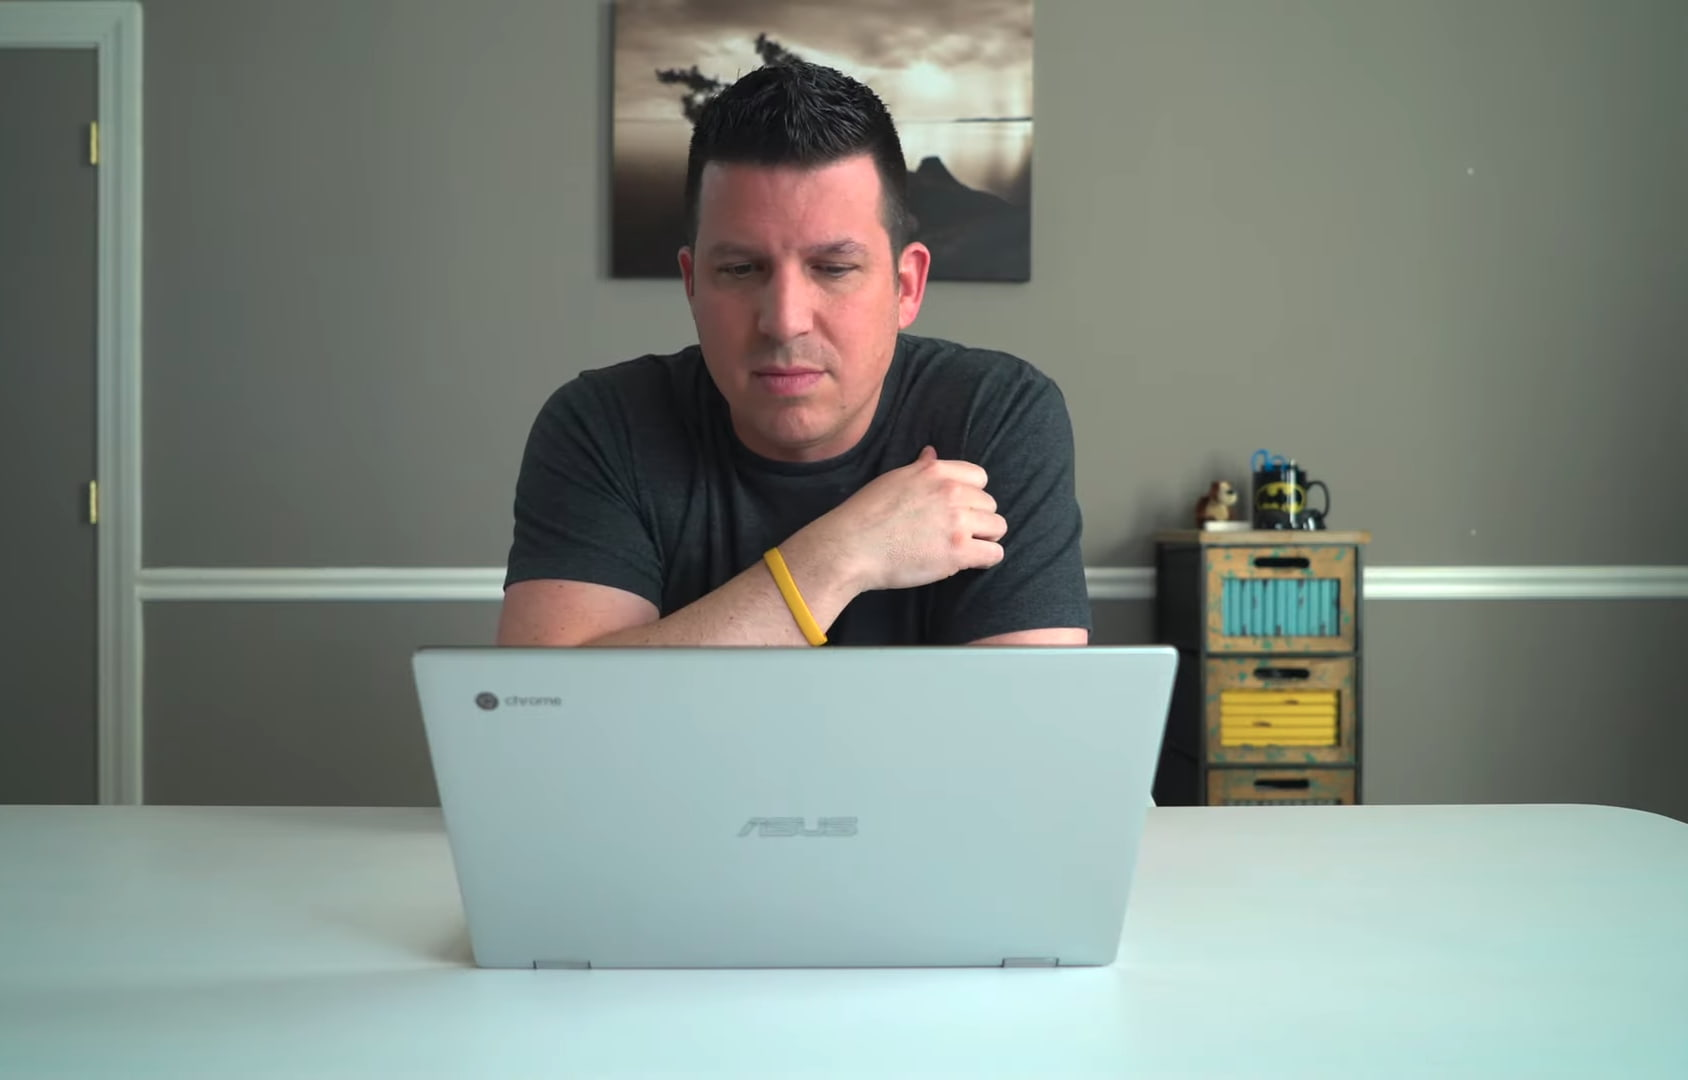 Unboxing the Highly-Anticipated ASUS Chromebook Flip C434 [VIDEO]